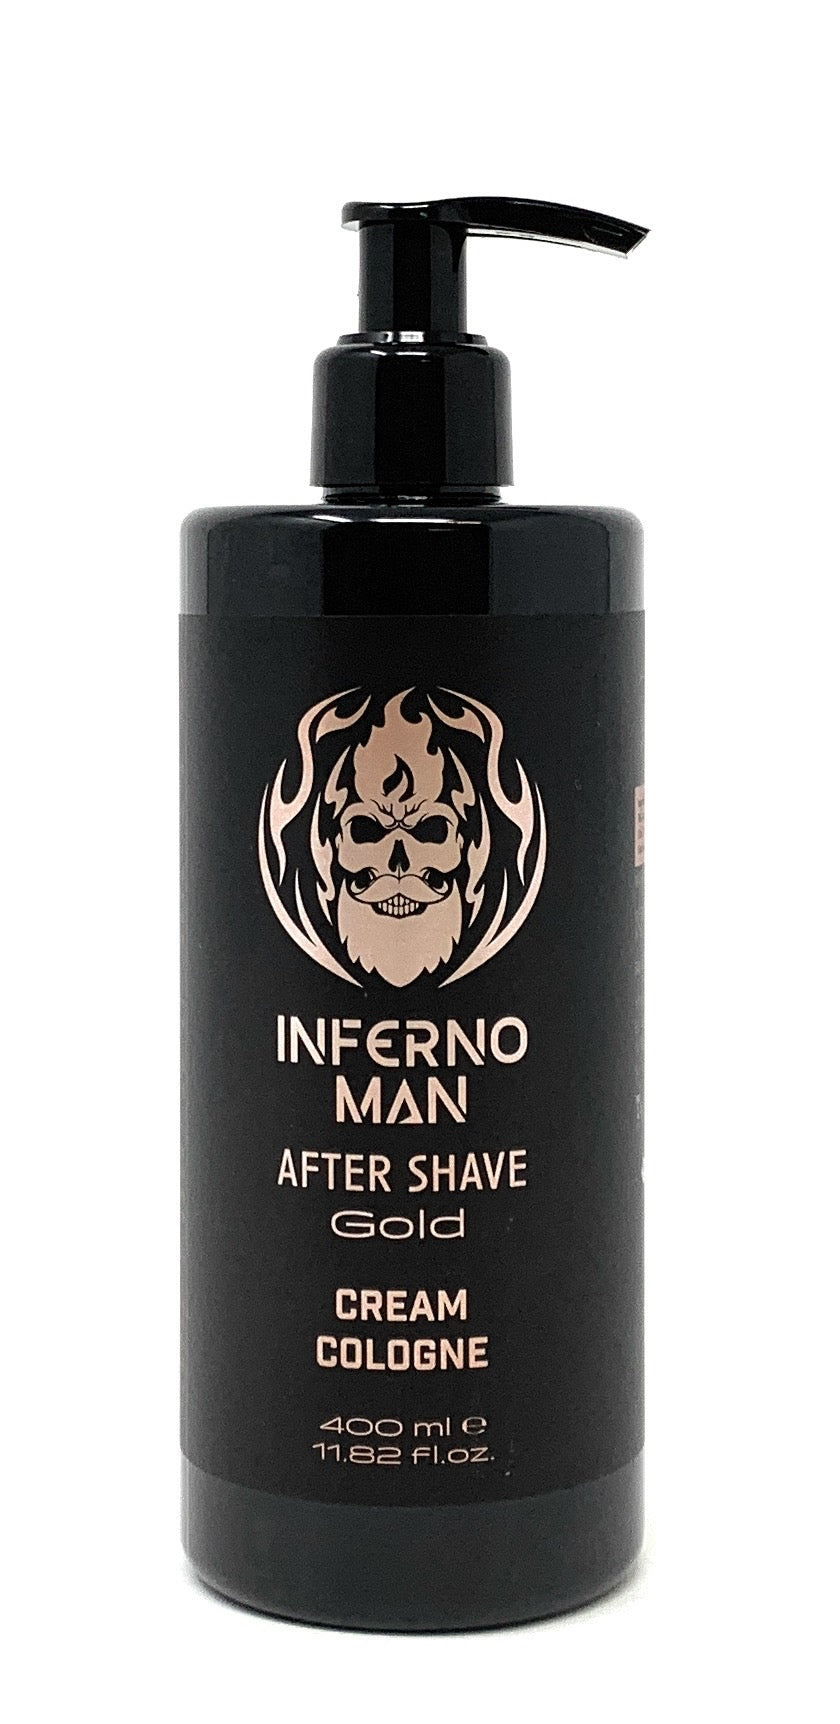 Inferno Man After Shave Gold Cream Cologne Invisible 400 ml